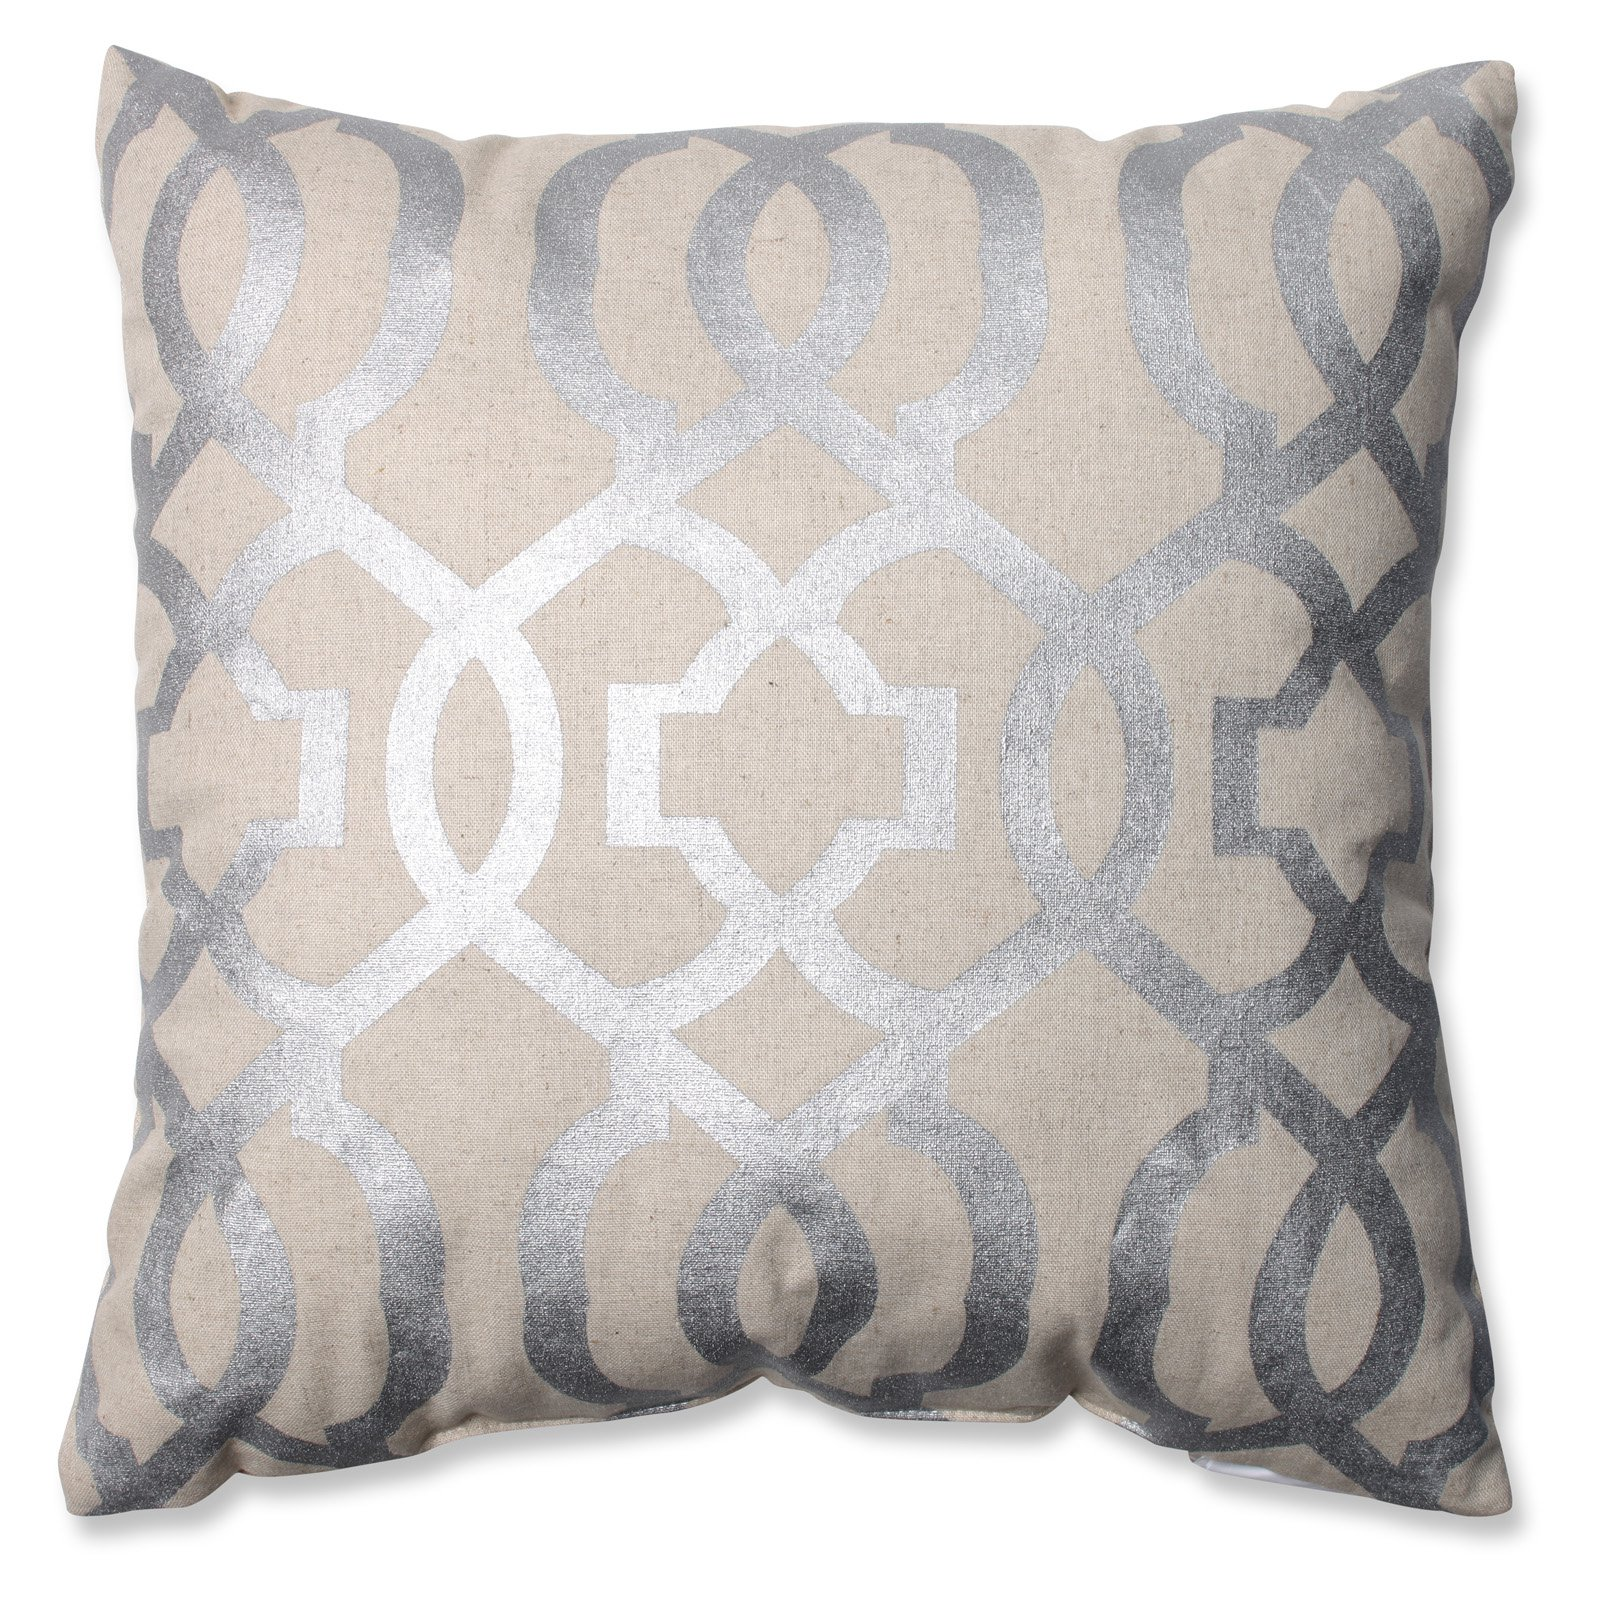 Pillow Perfect Geometric Metals Linen 16.5 in. Throw Pillow by Pillow Perfect Inc